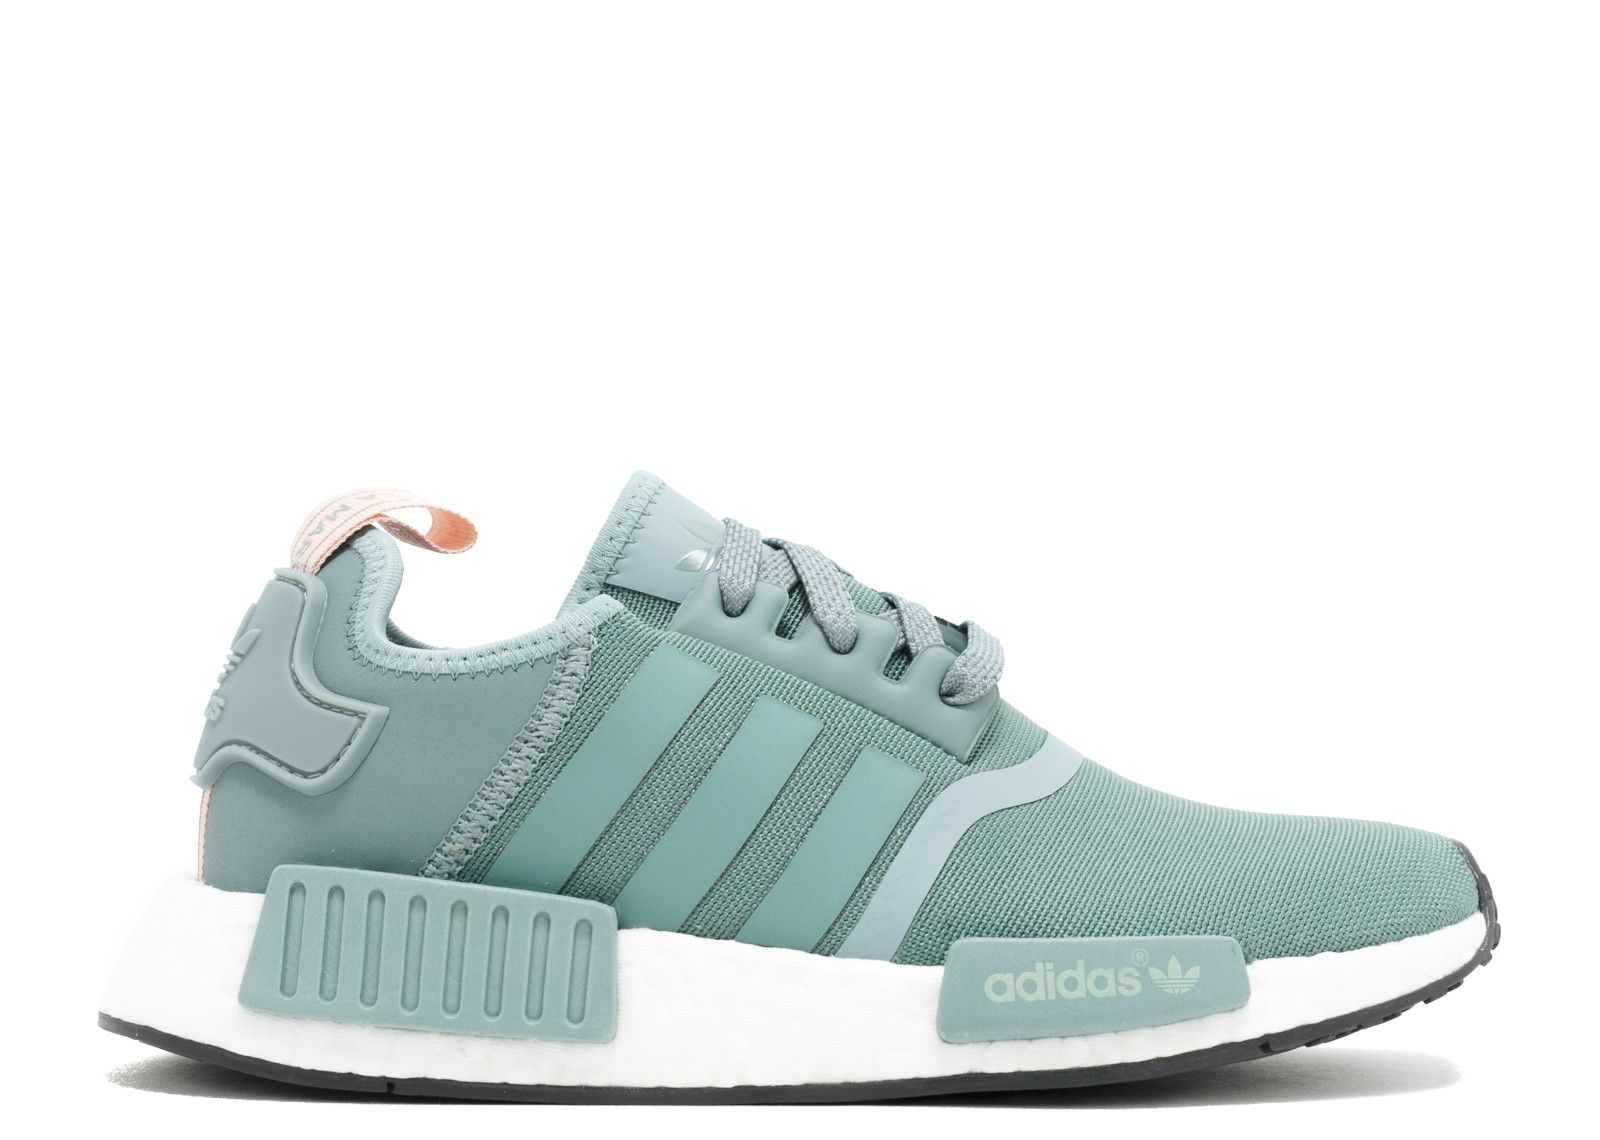 new product e108f cecda nmd r1 w   Clothes   Pinterest   Nmd r1, Nmd and Flight club